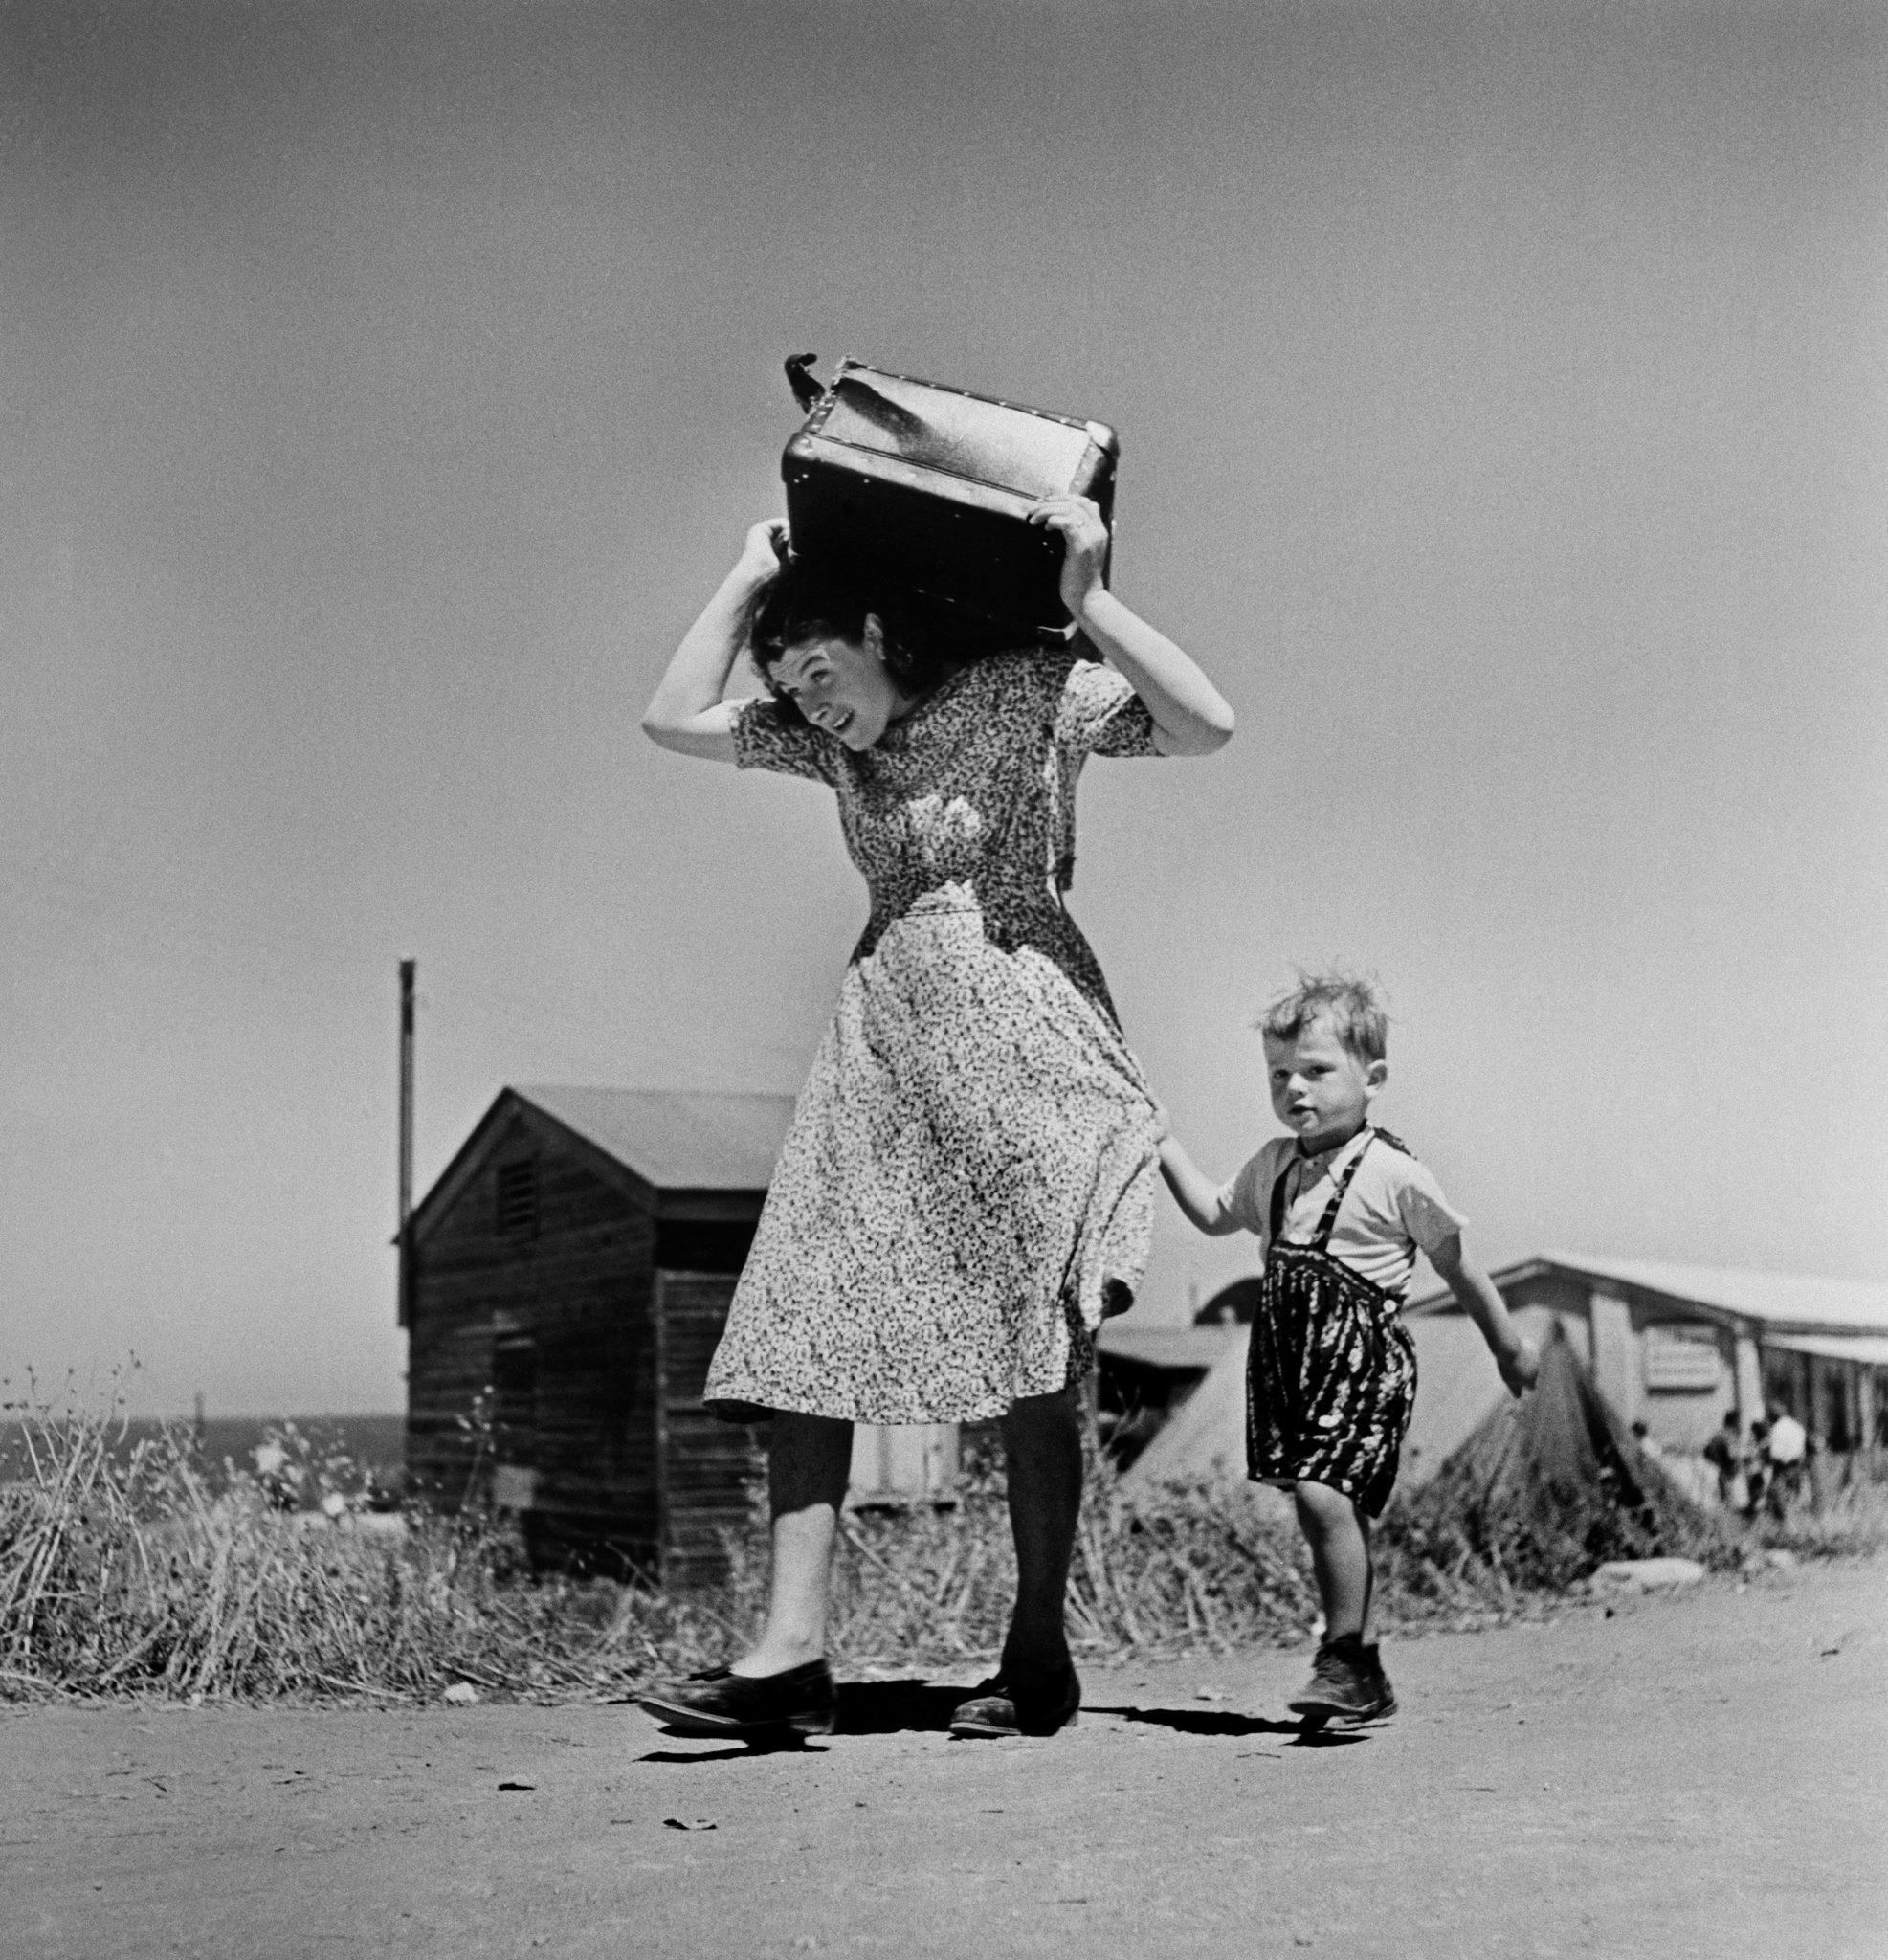 Robert Capa, Woman carrying luggage accompanied by a small boy. Haifa. ISRAEL. 1949-50 @ Magnum Photos